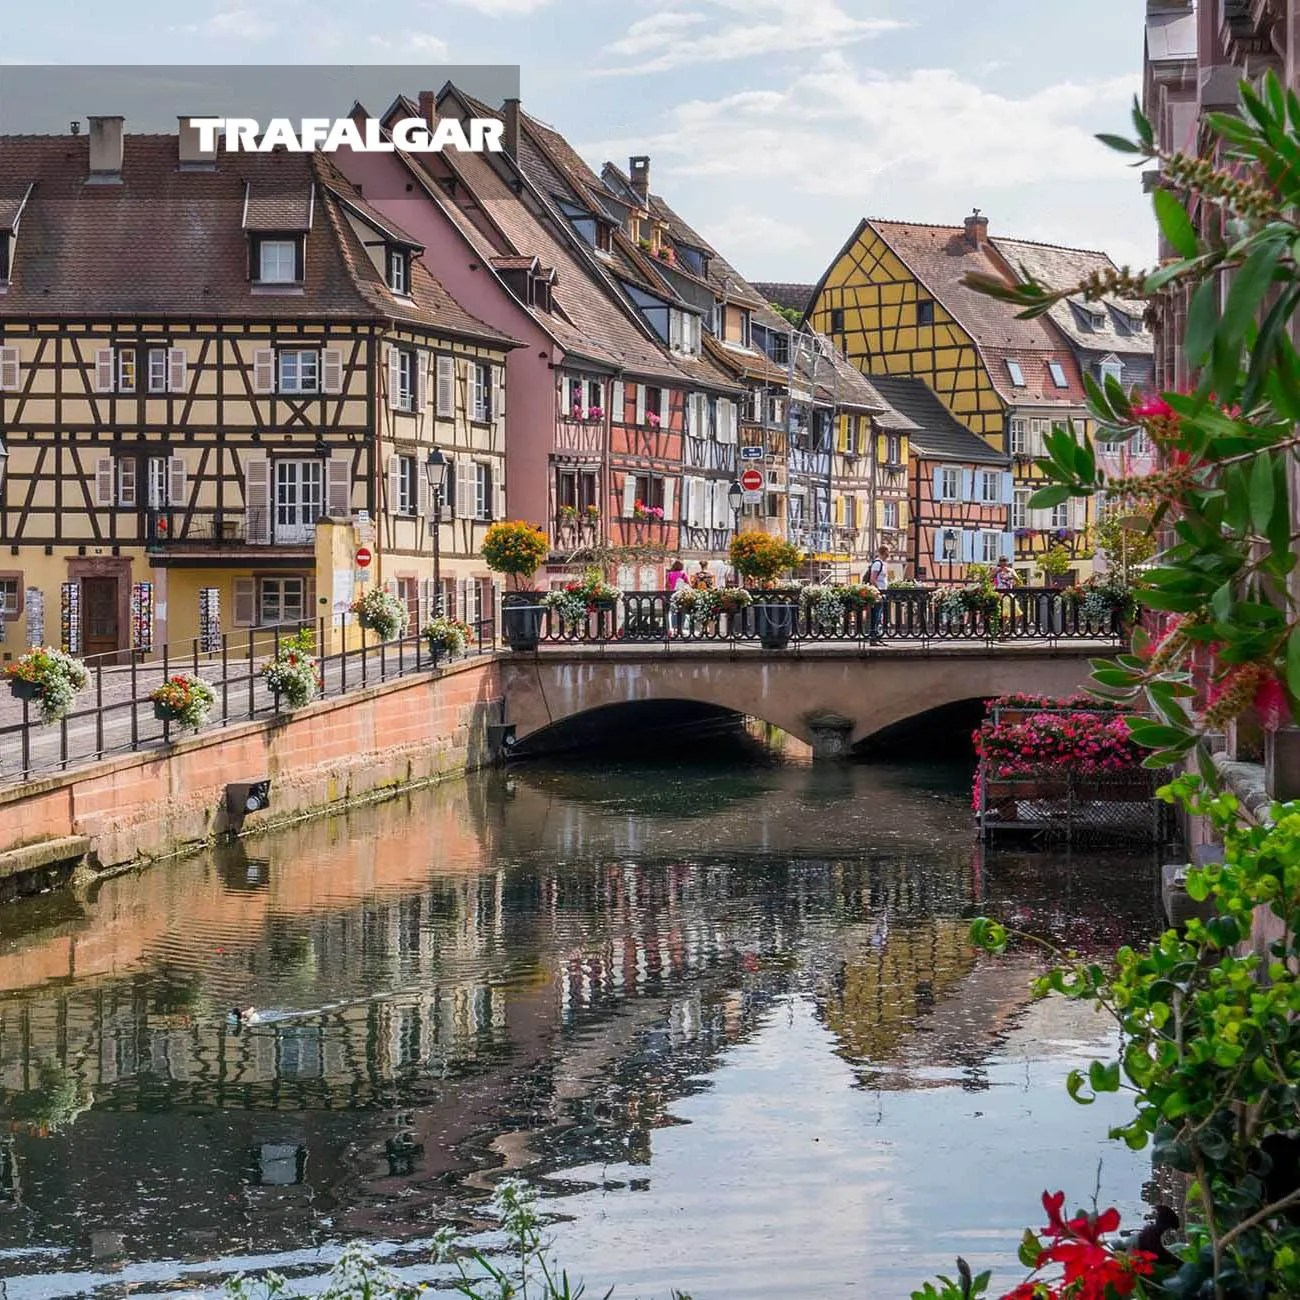 Top things to do free things to do things to do with kids chicago's best bea. Traditional Europe End Paris 2021 by Trafalgar Tours with ...